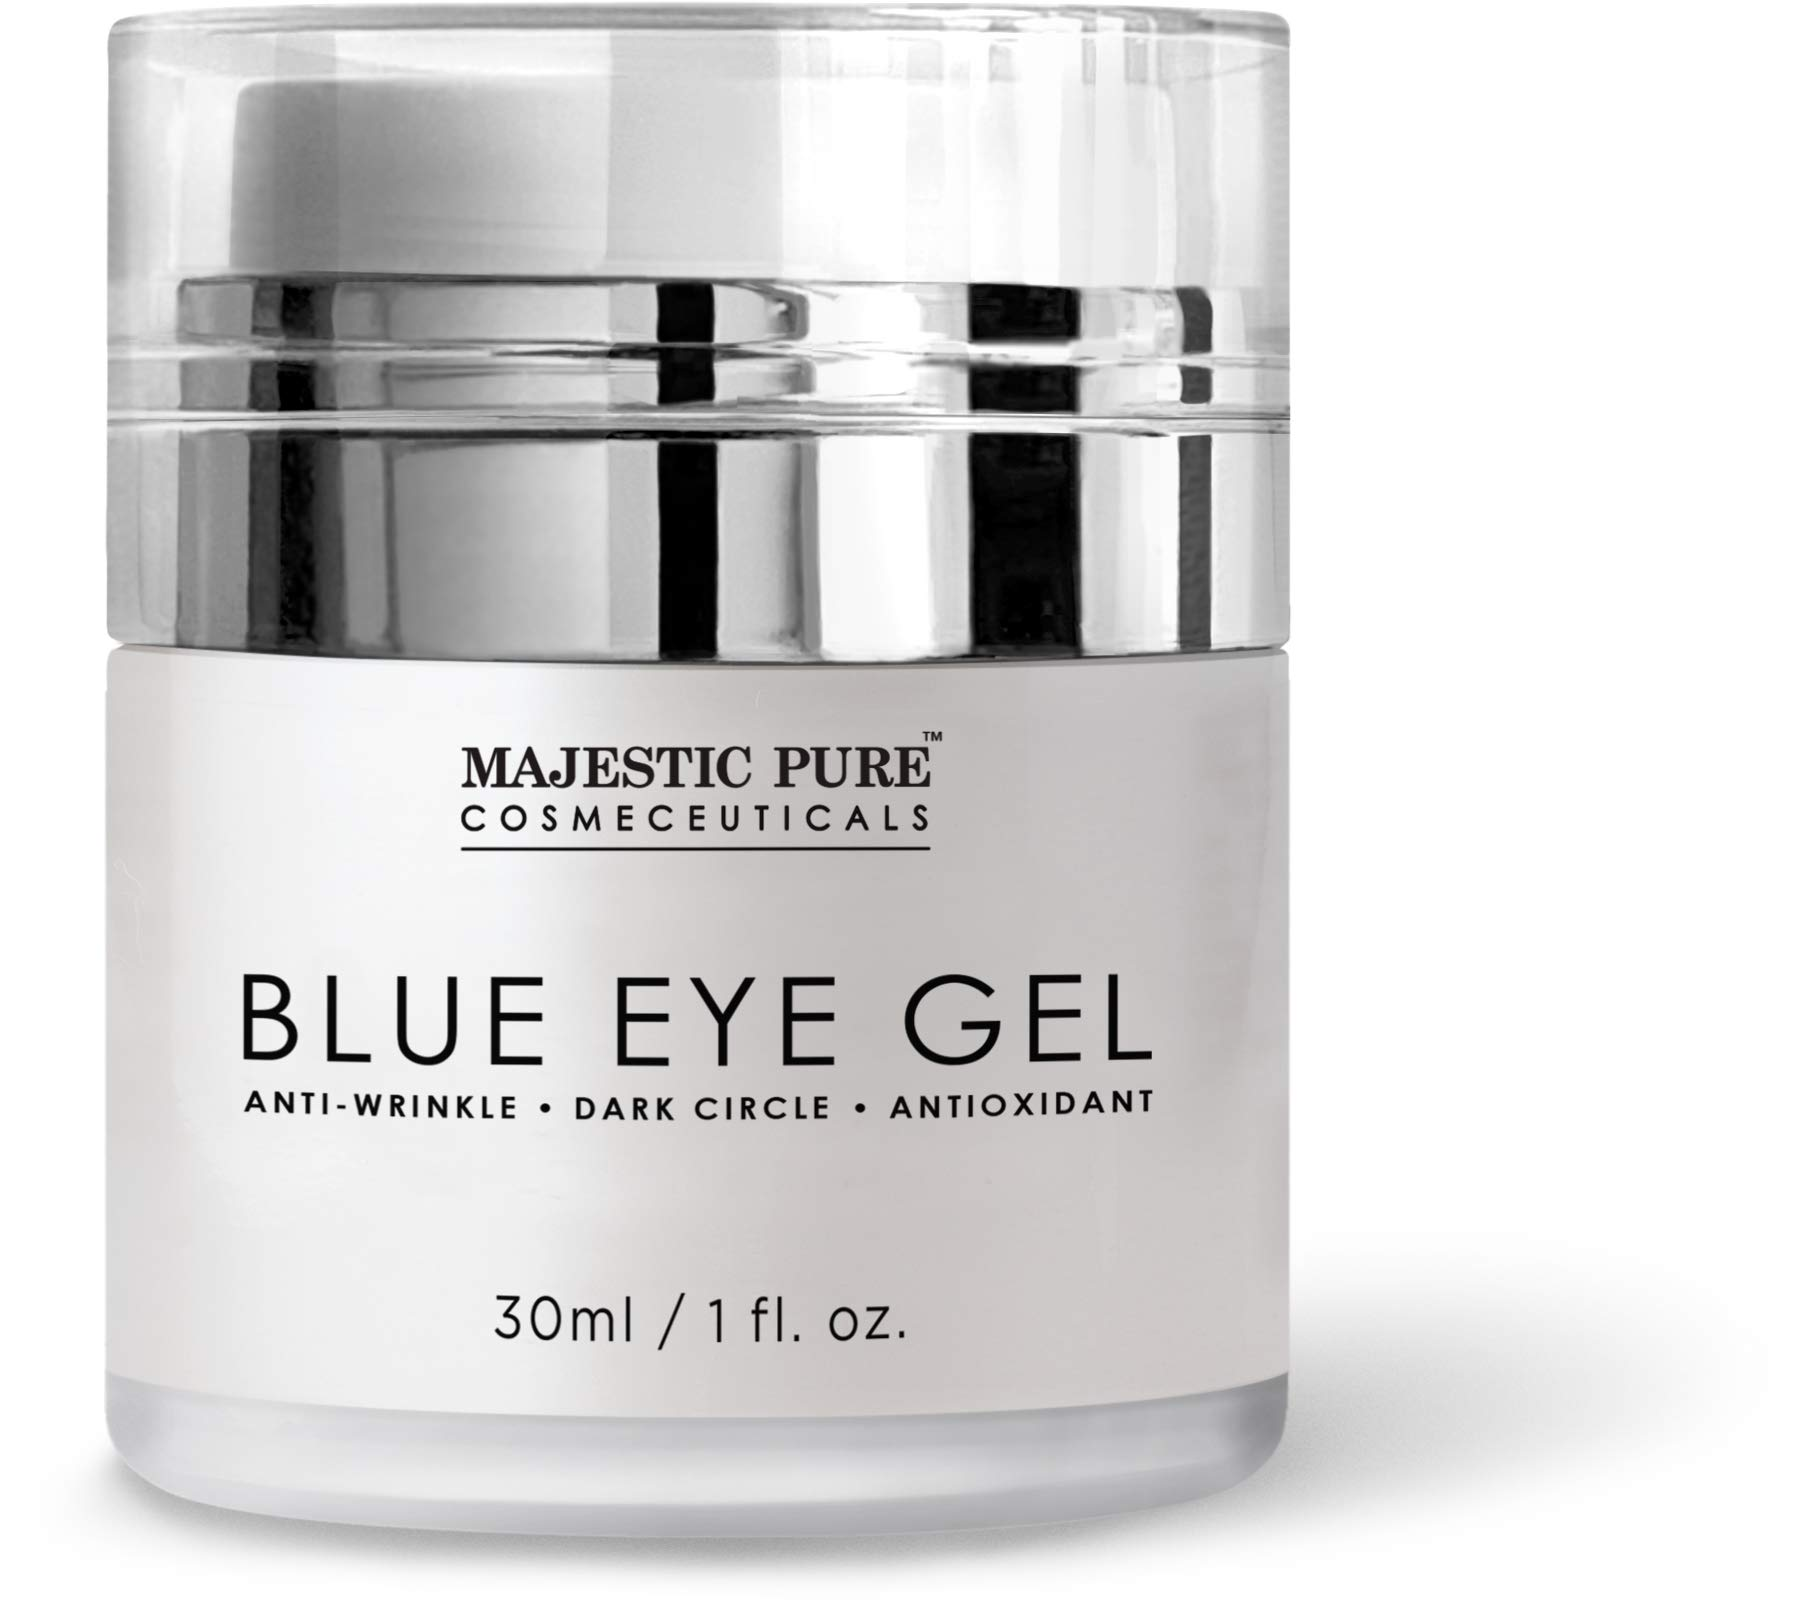 Majestic Pure Blue Eye Gel, Help Reduce the Appearances of Dark Circles, Puffiness, Bags and Wrinkles - 1 fl. oz